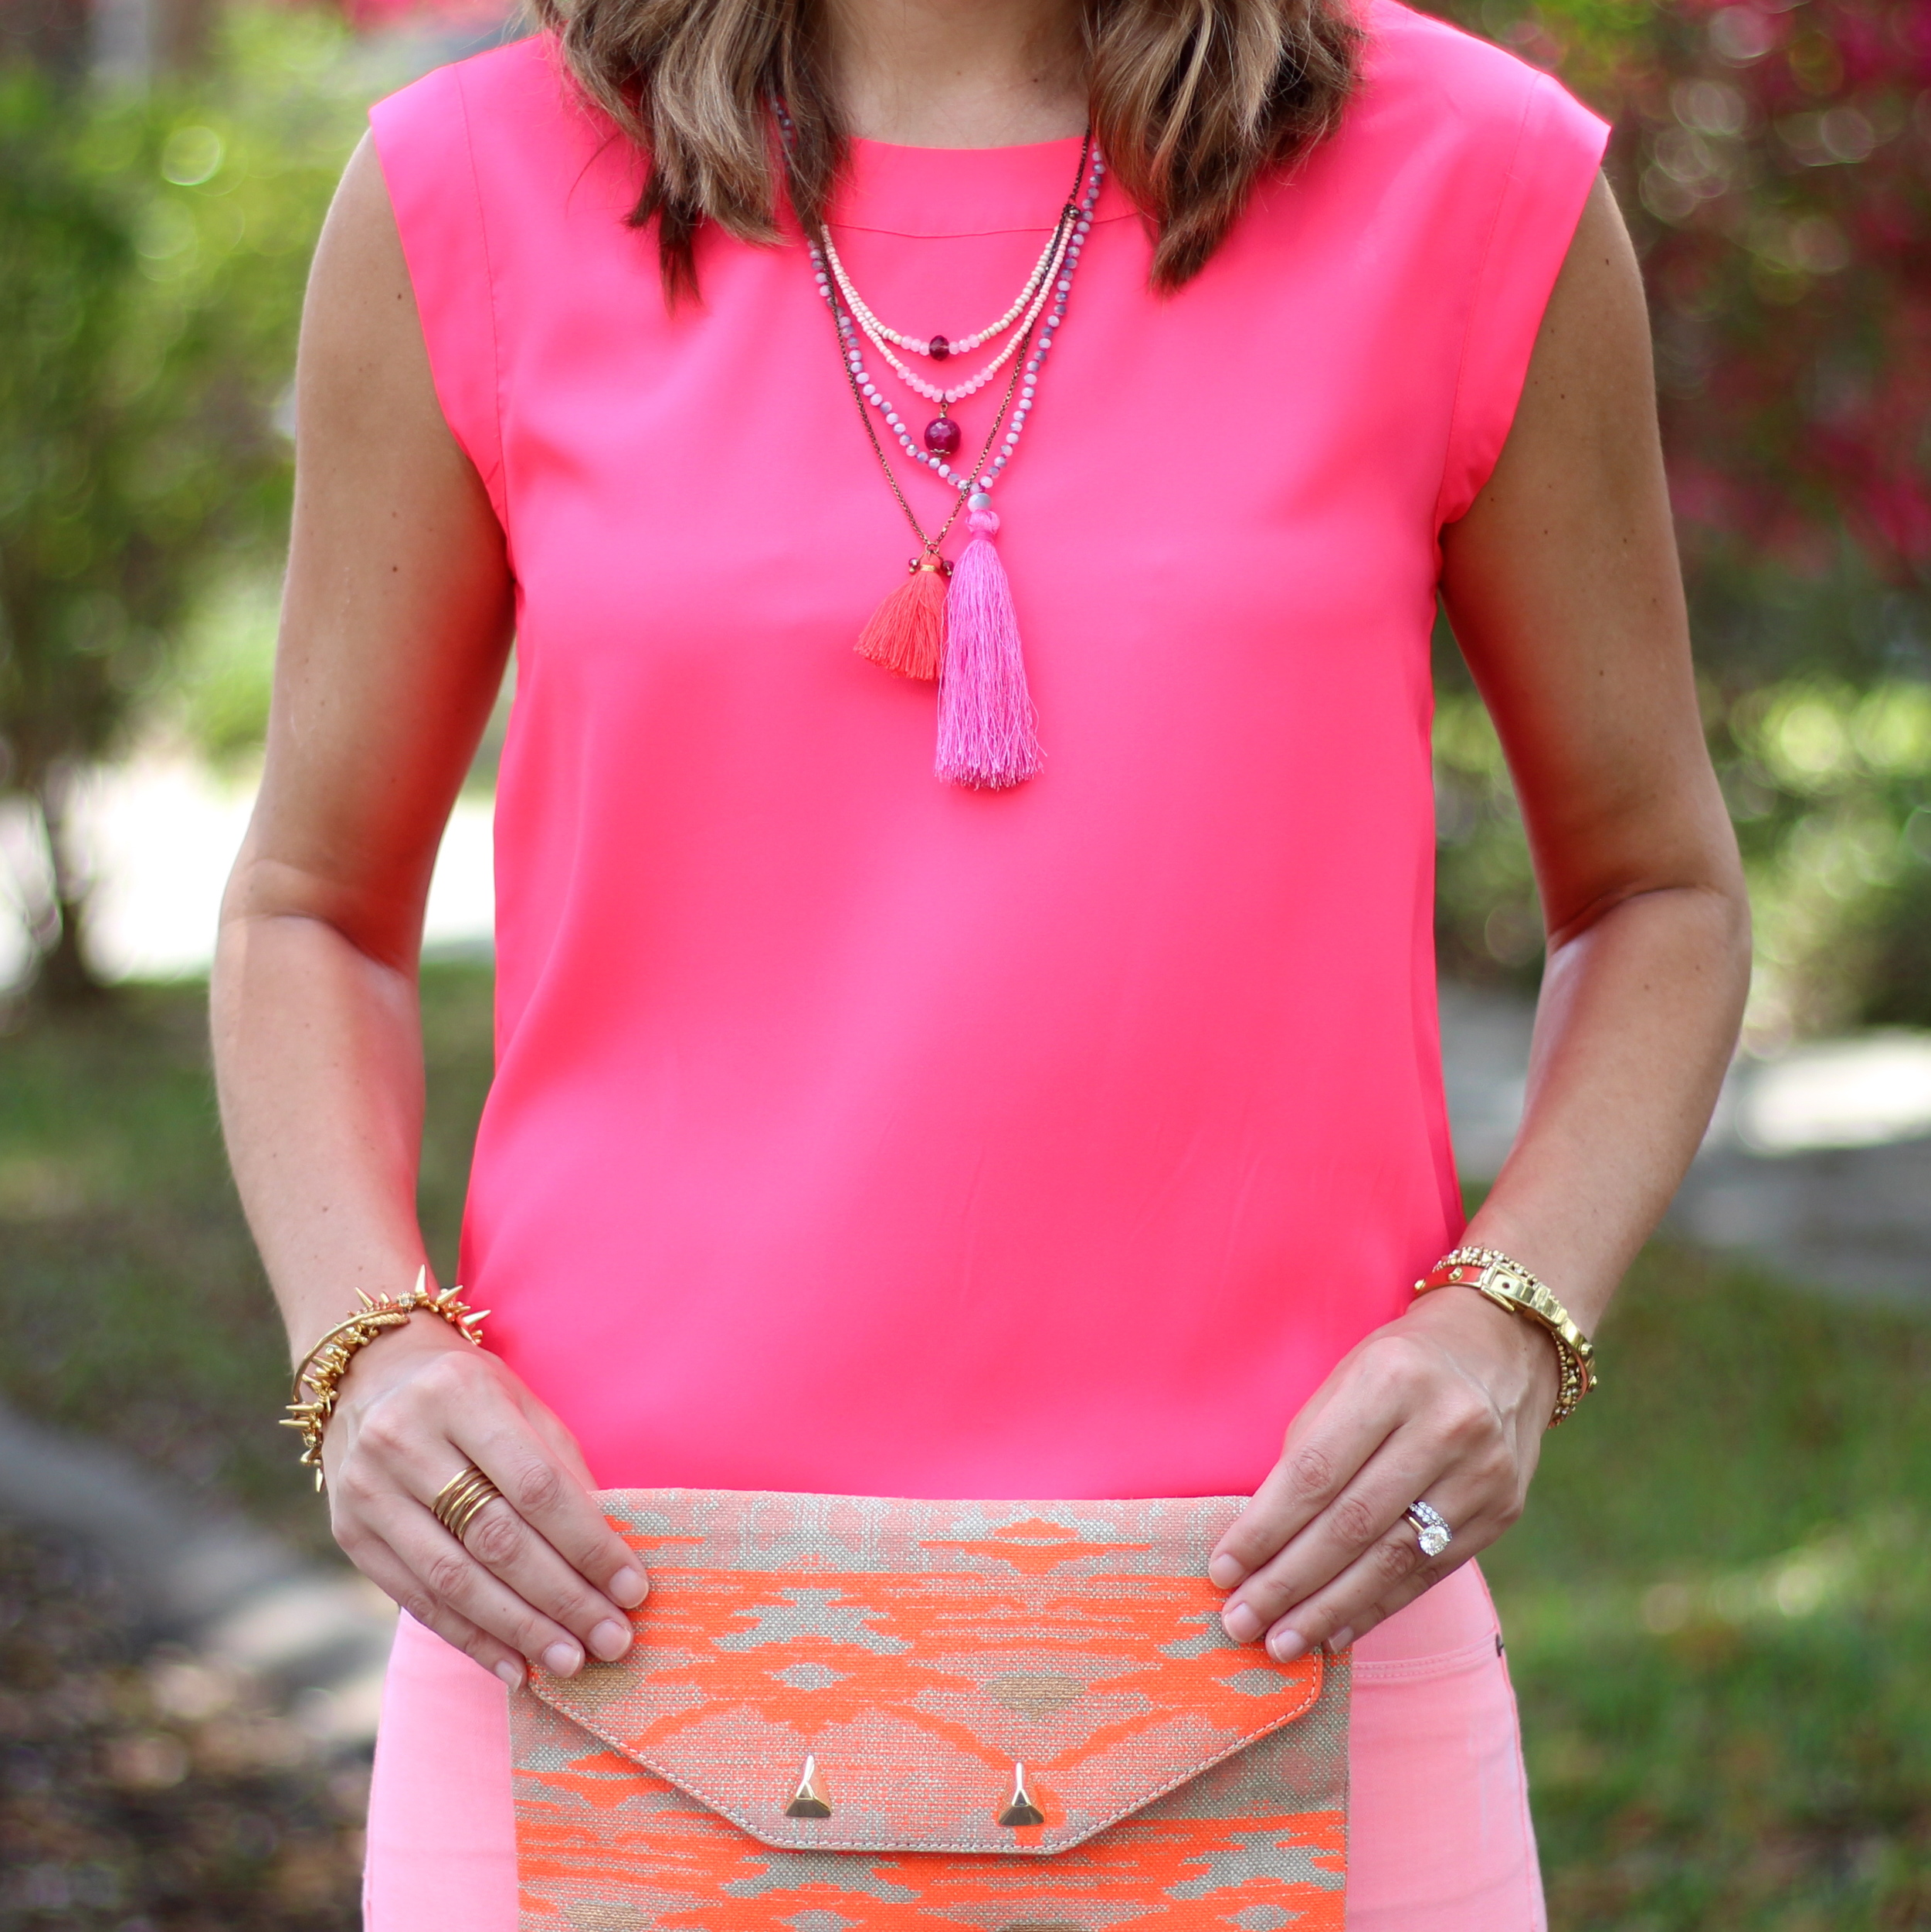 Neon pink, tassel necklace, coral jeans